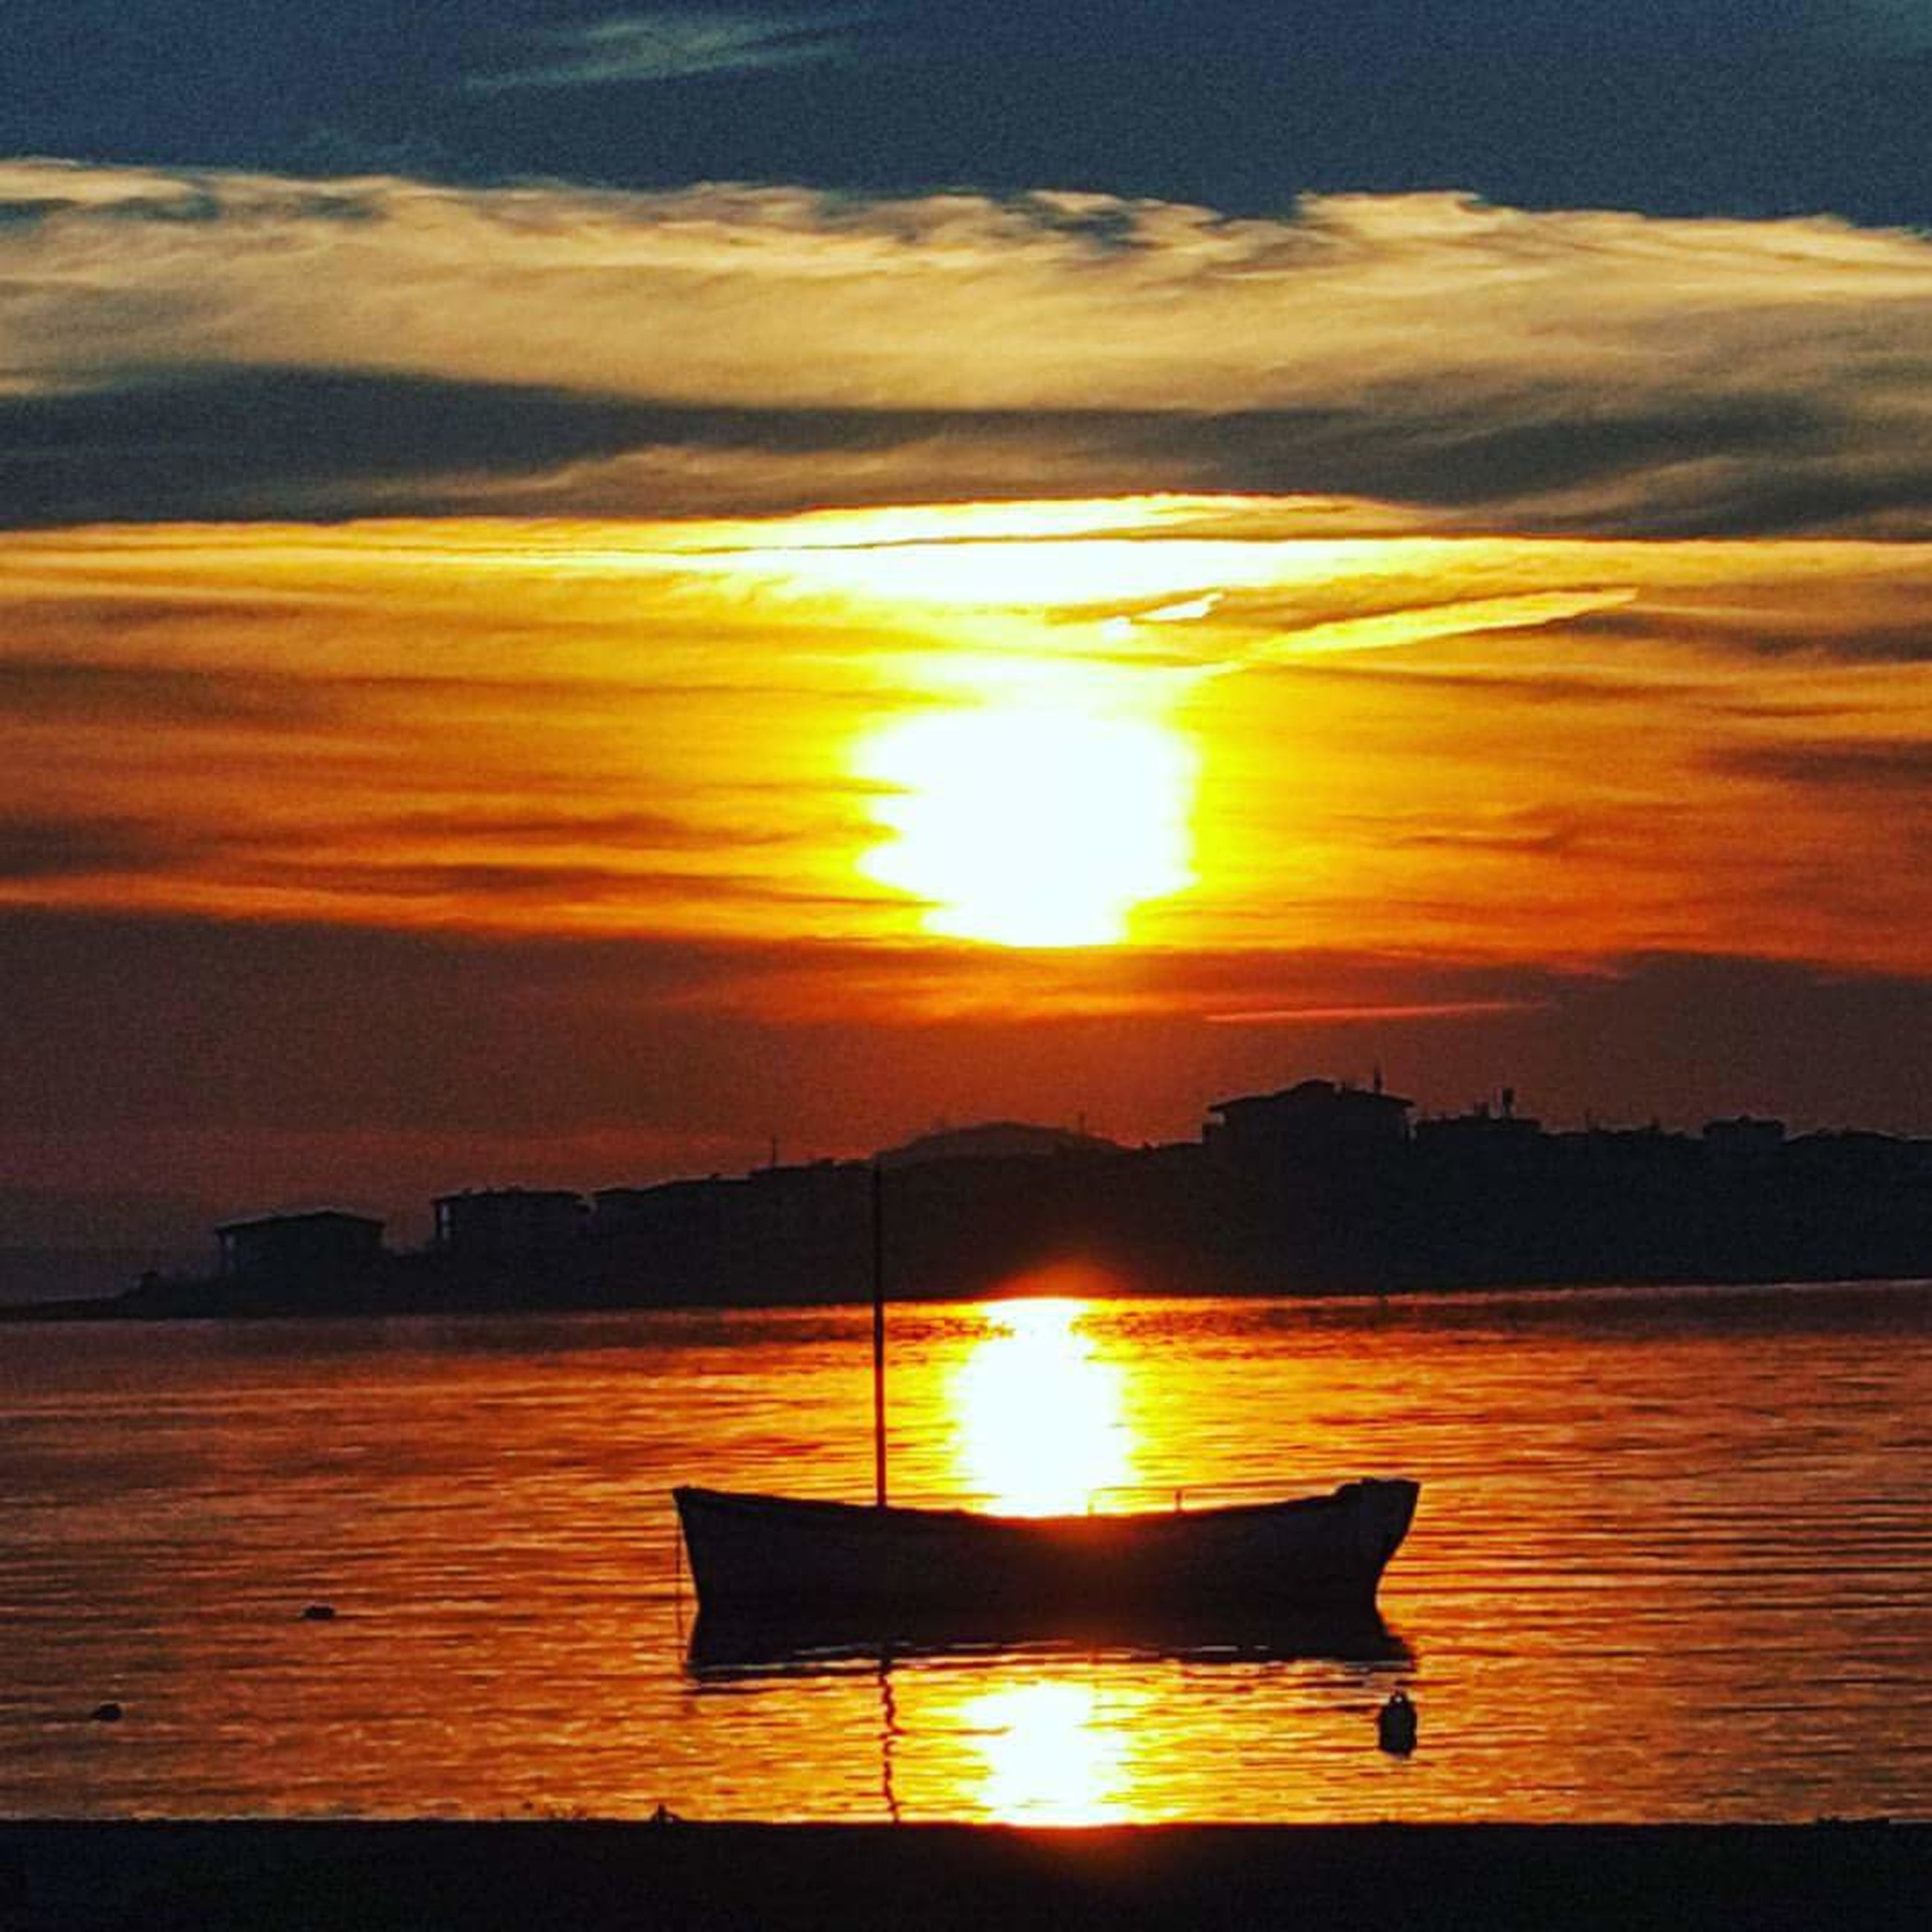 sunset, orange color, sun, water, scenics, reflection, sky, beauty in nature, sea, tranquil scene, silhouette, tranquility, nautical vessel, sunlight, idyllic, nature, transportation, horizon over water, boat, cloud - sky